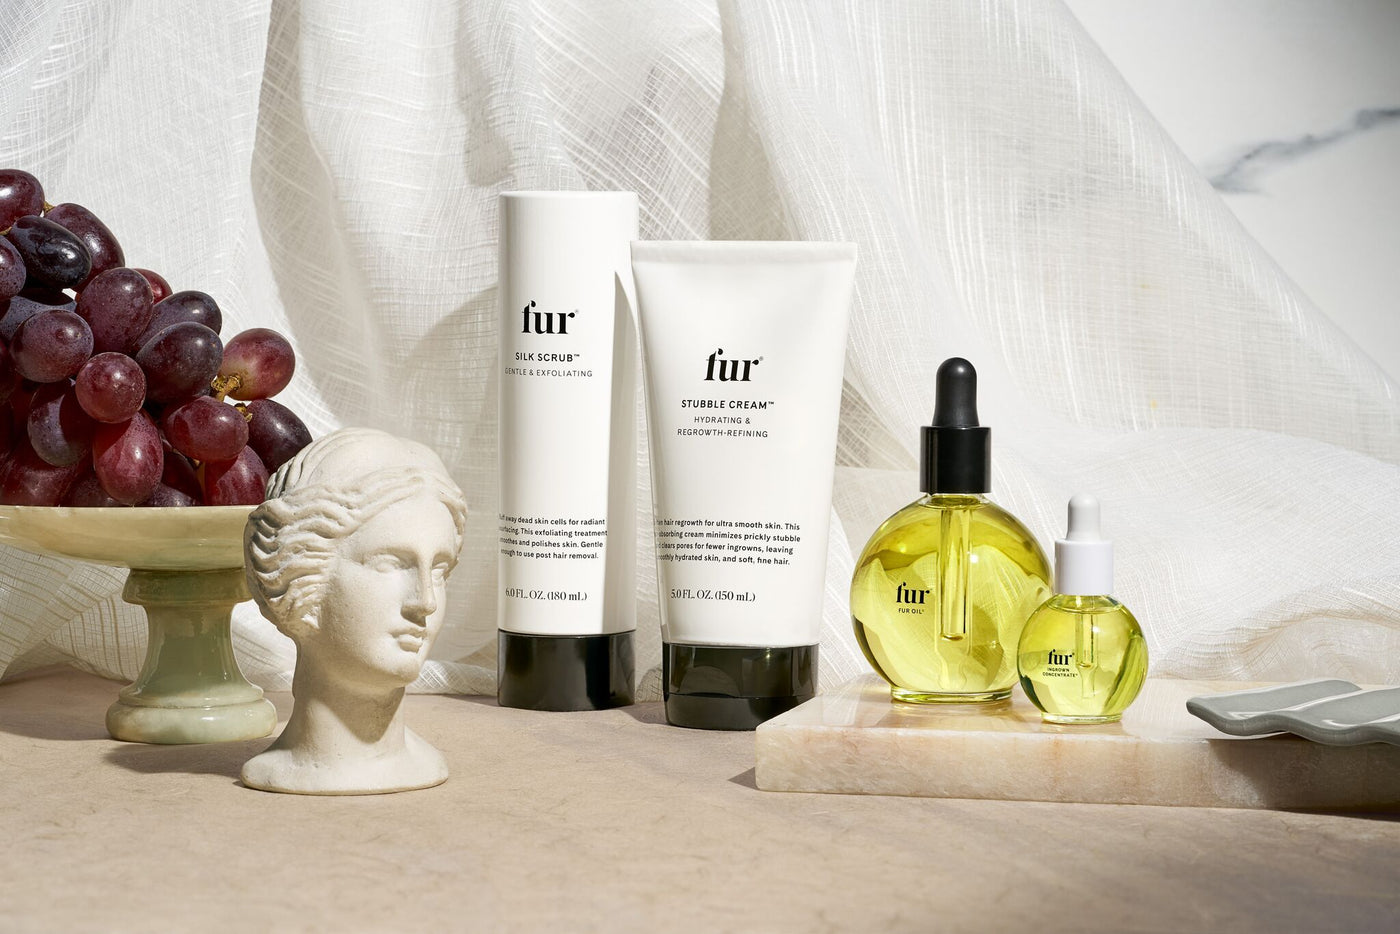 Fur Oil, Ingrown Concentrate, Stubble Cream, and Silk Scrub on a marble tray with grapes and a small statue head surrounding them set against a white curtain background.